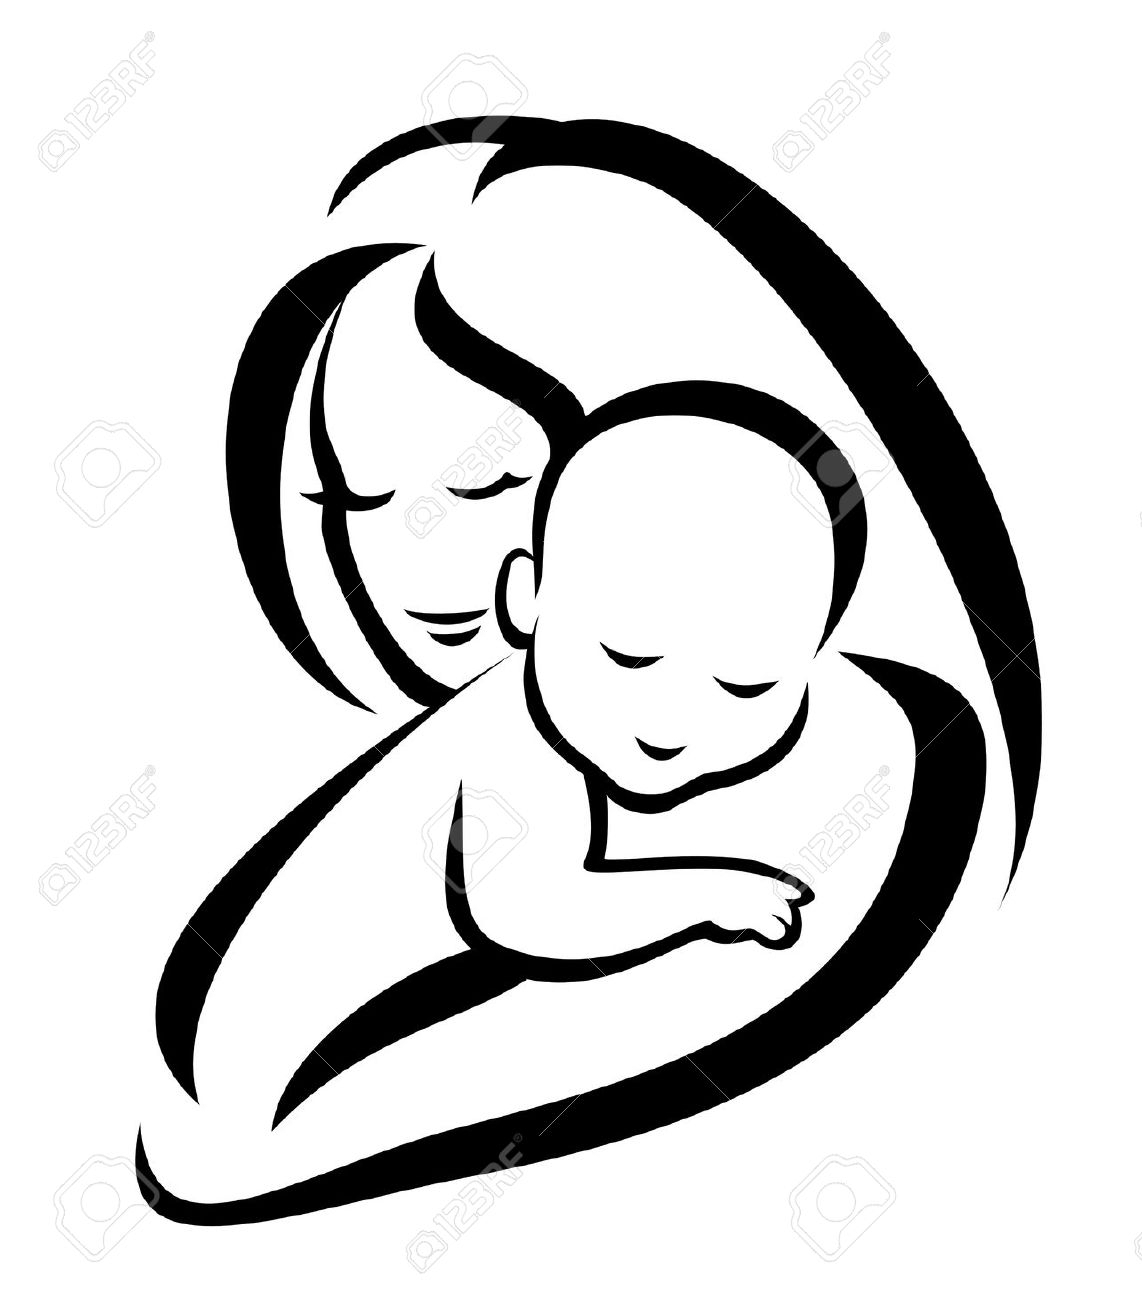 mother and child drawing at getdrawings com free for personal use rh getdrawings com mom and baby clipart free mom and baby clipart